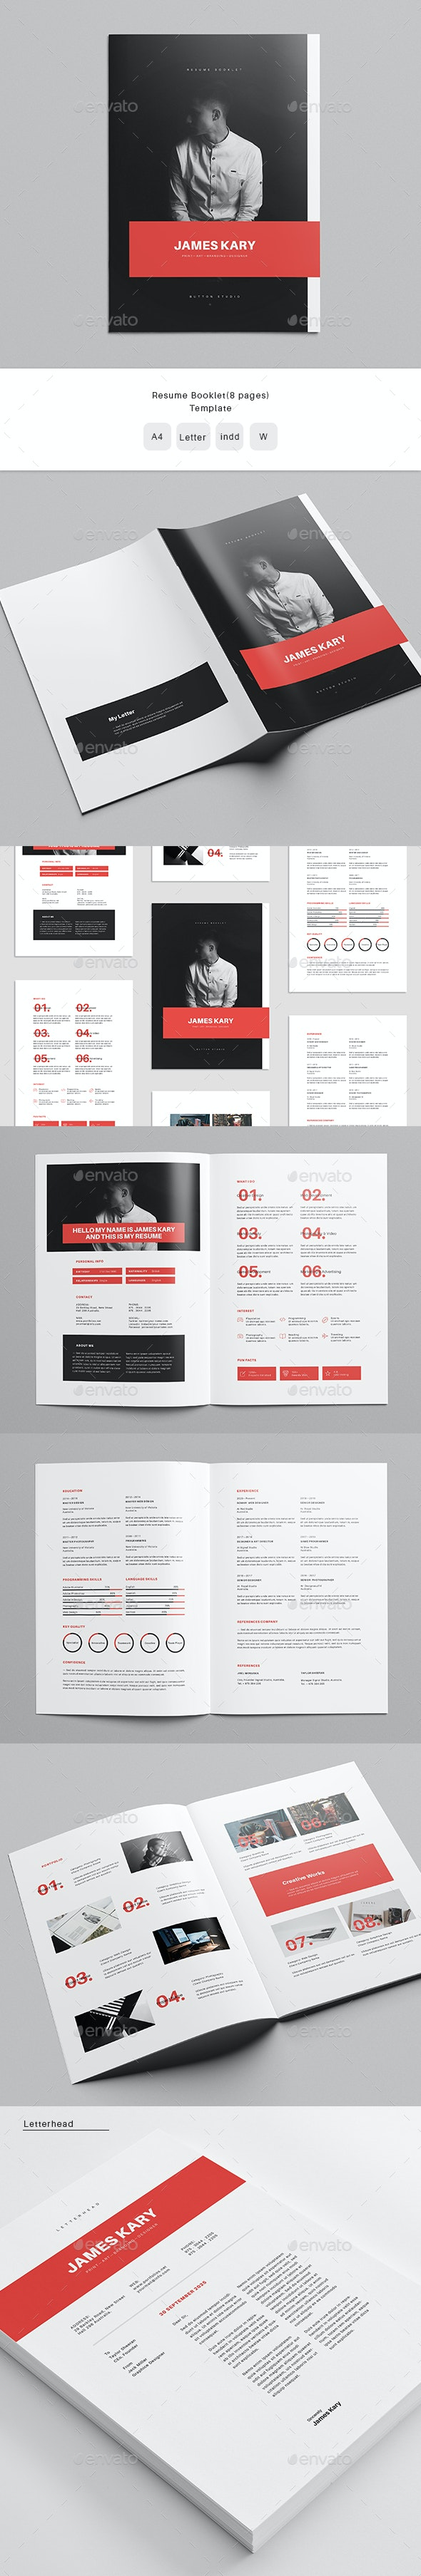 Resume Booklet (8 pages) Template - Resumes Stationery